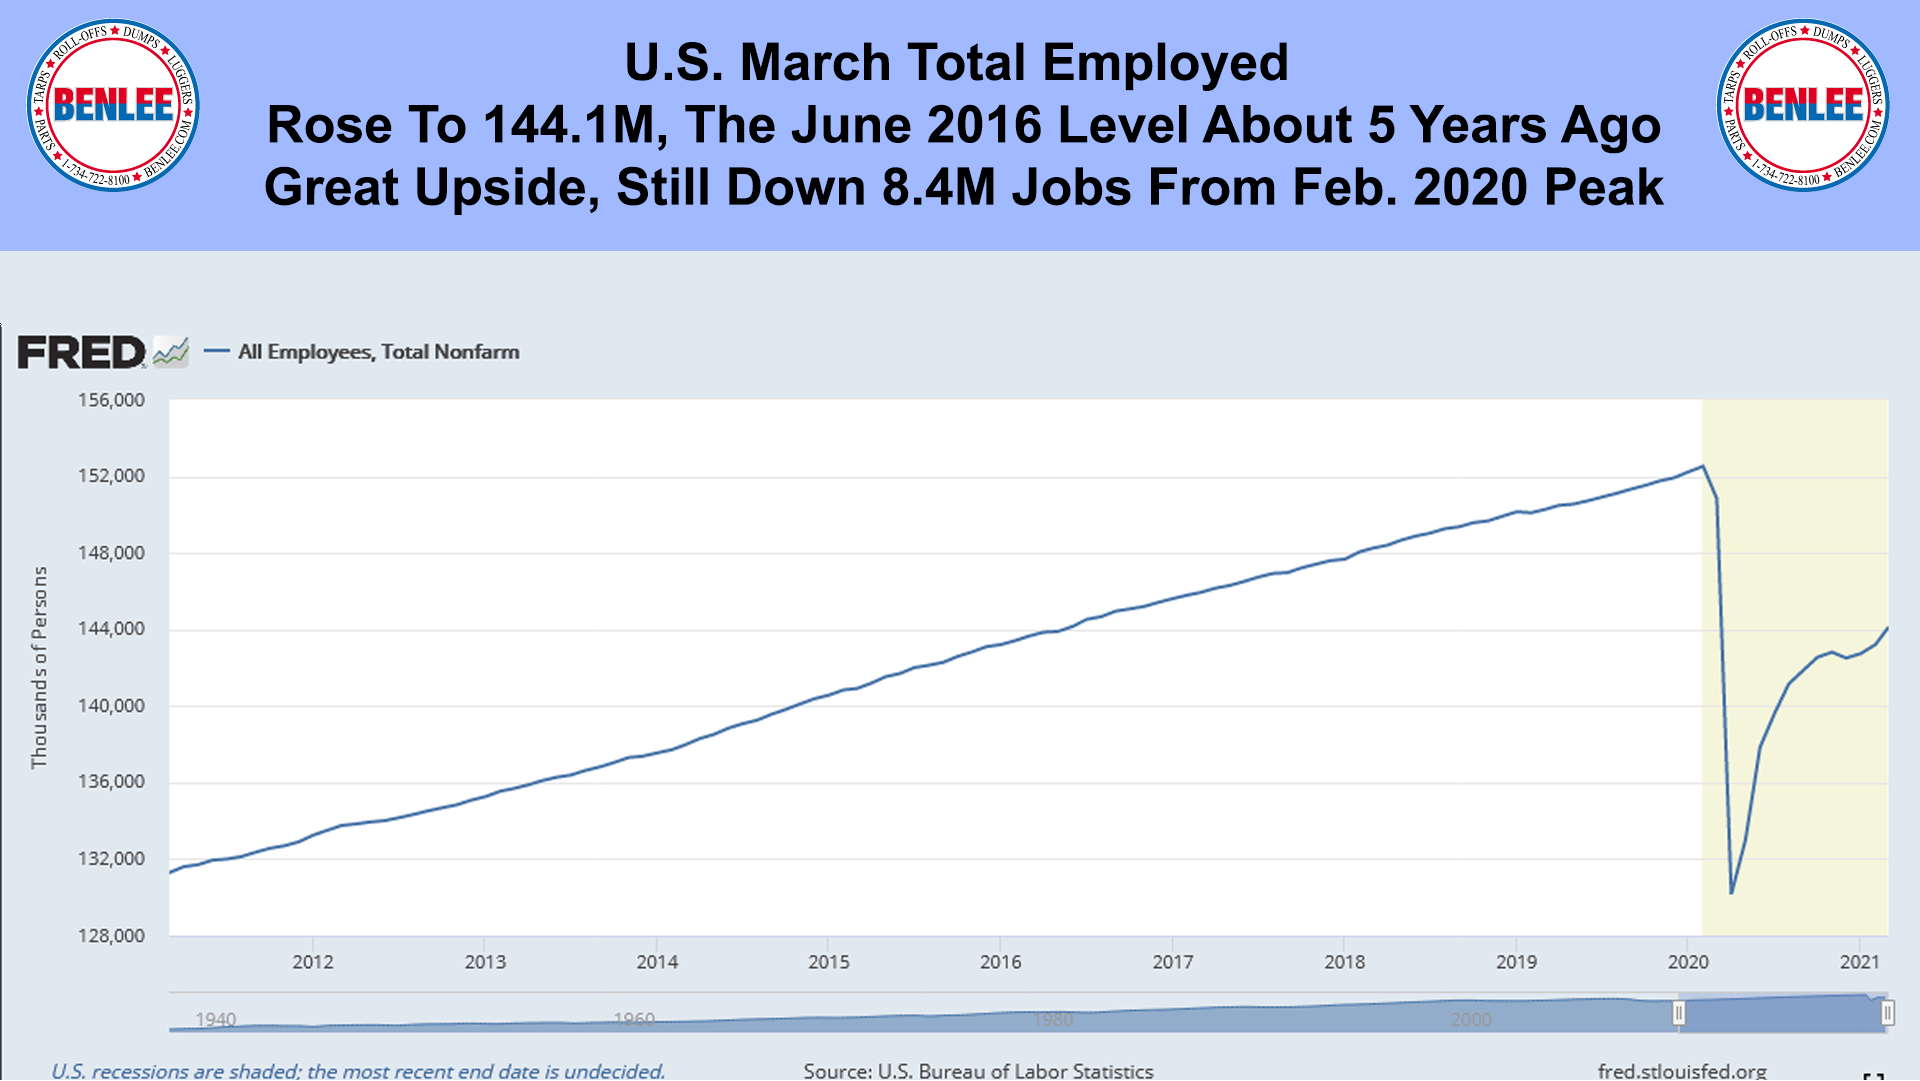 U.S. March Total Employed